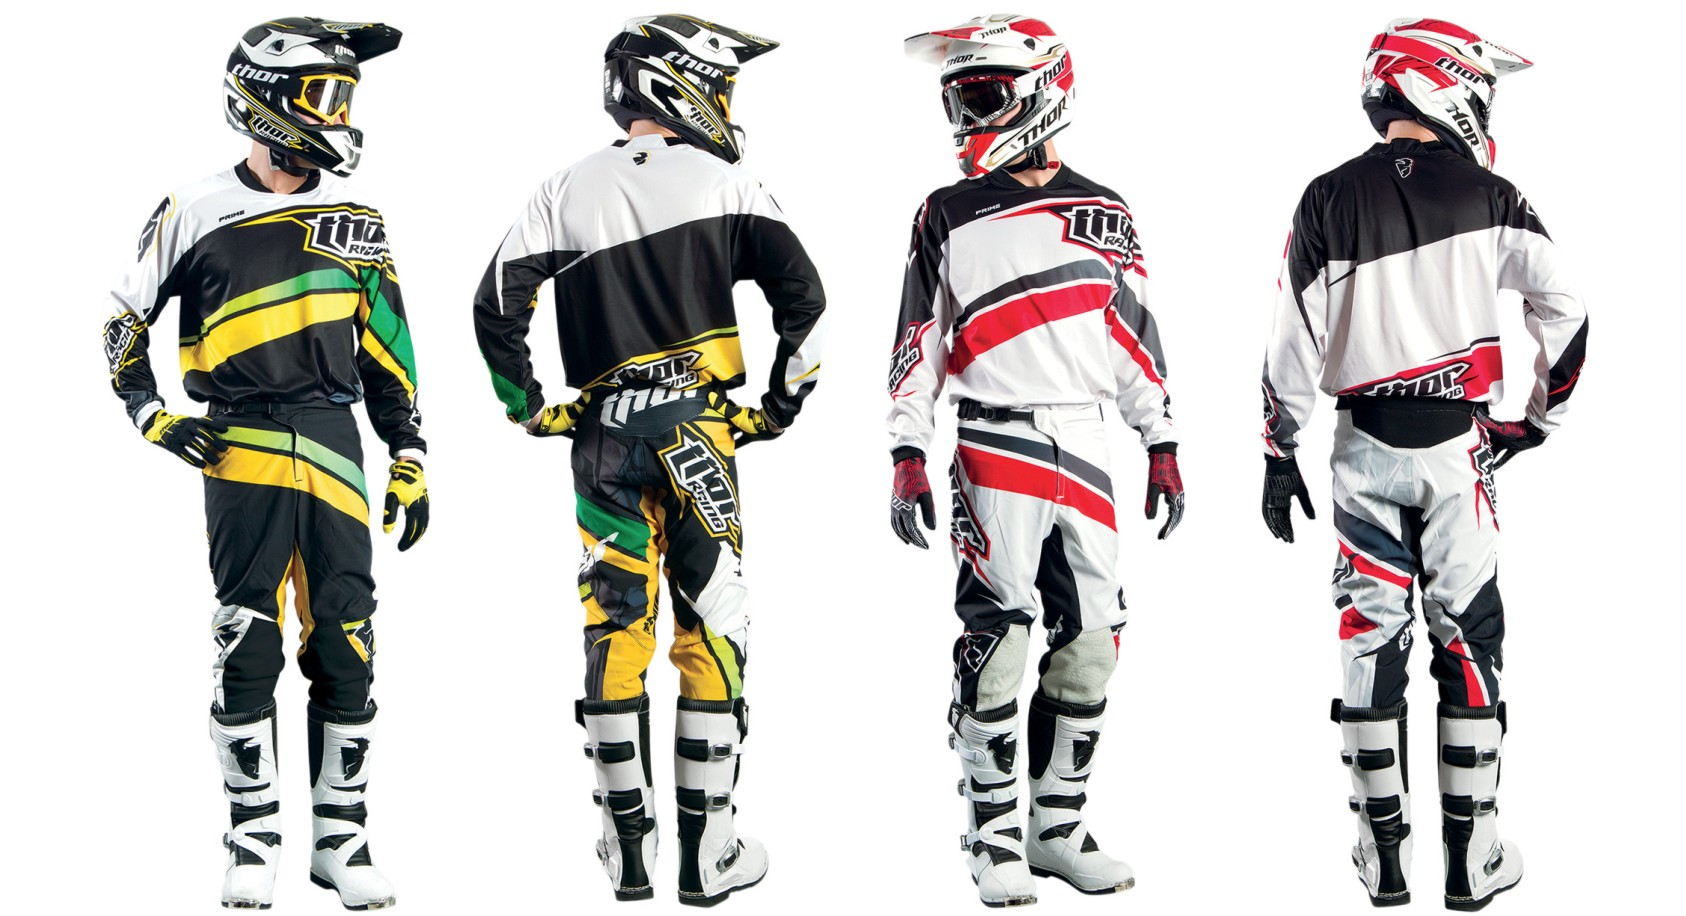 The Thor Prime Slice motocross kit